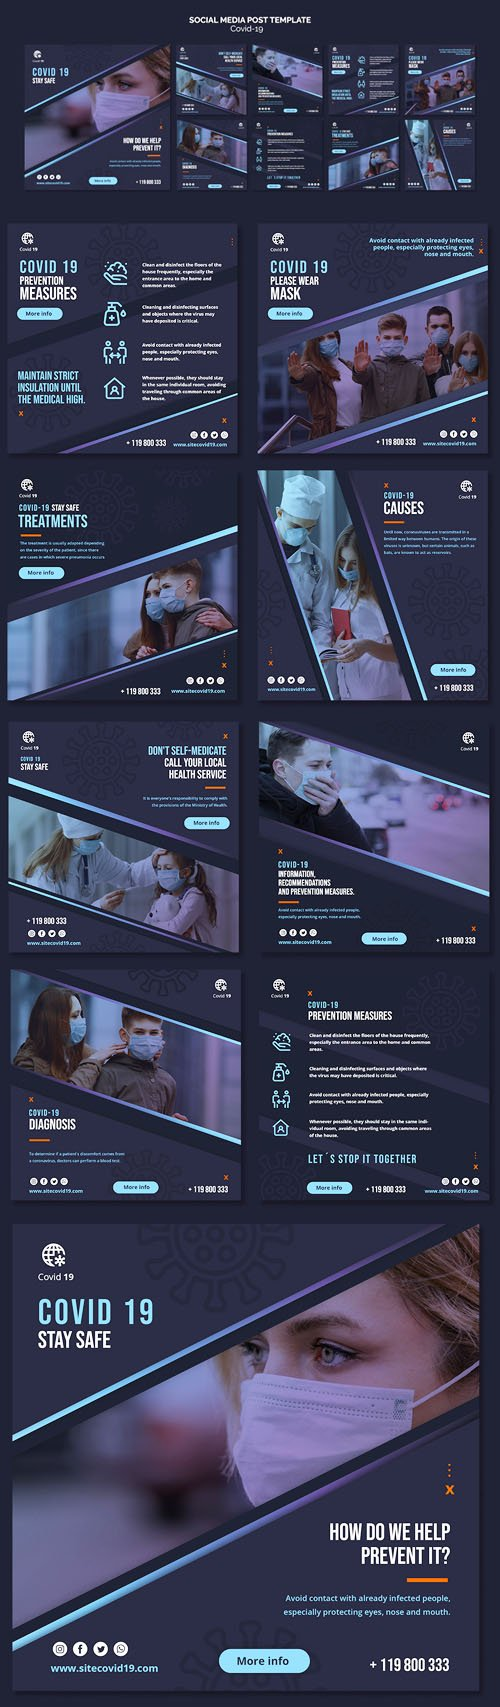 Covid-19 - Social Media Post PSD Template